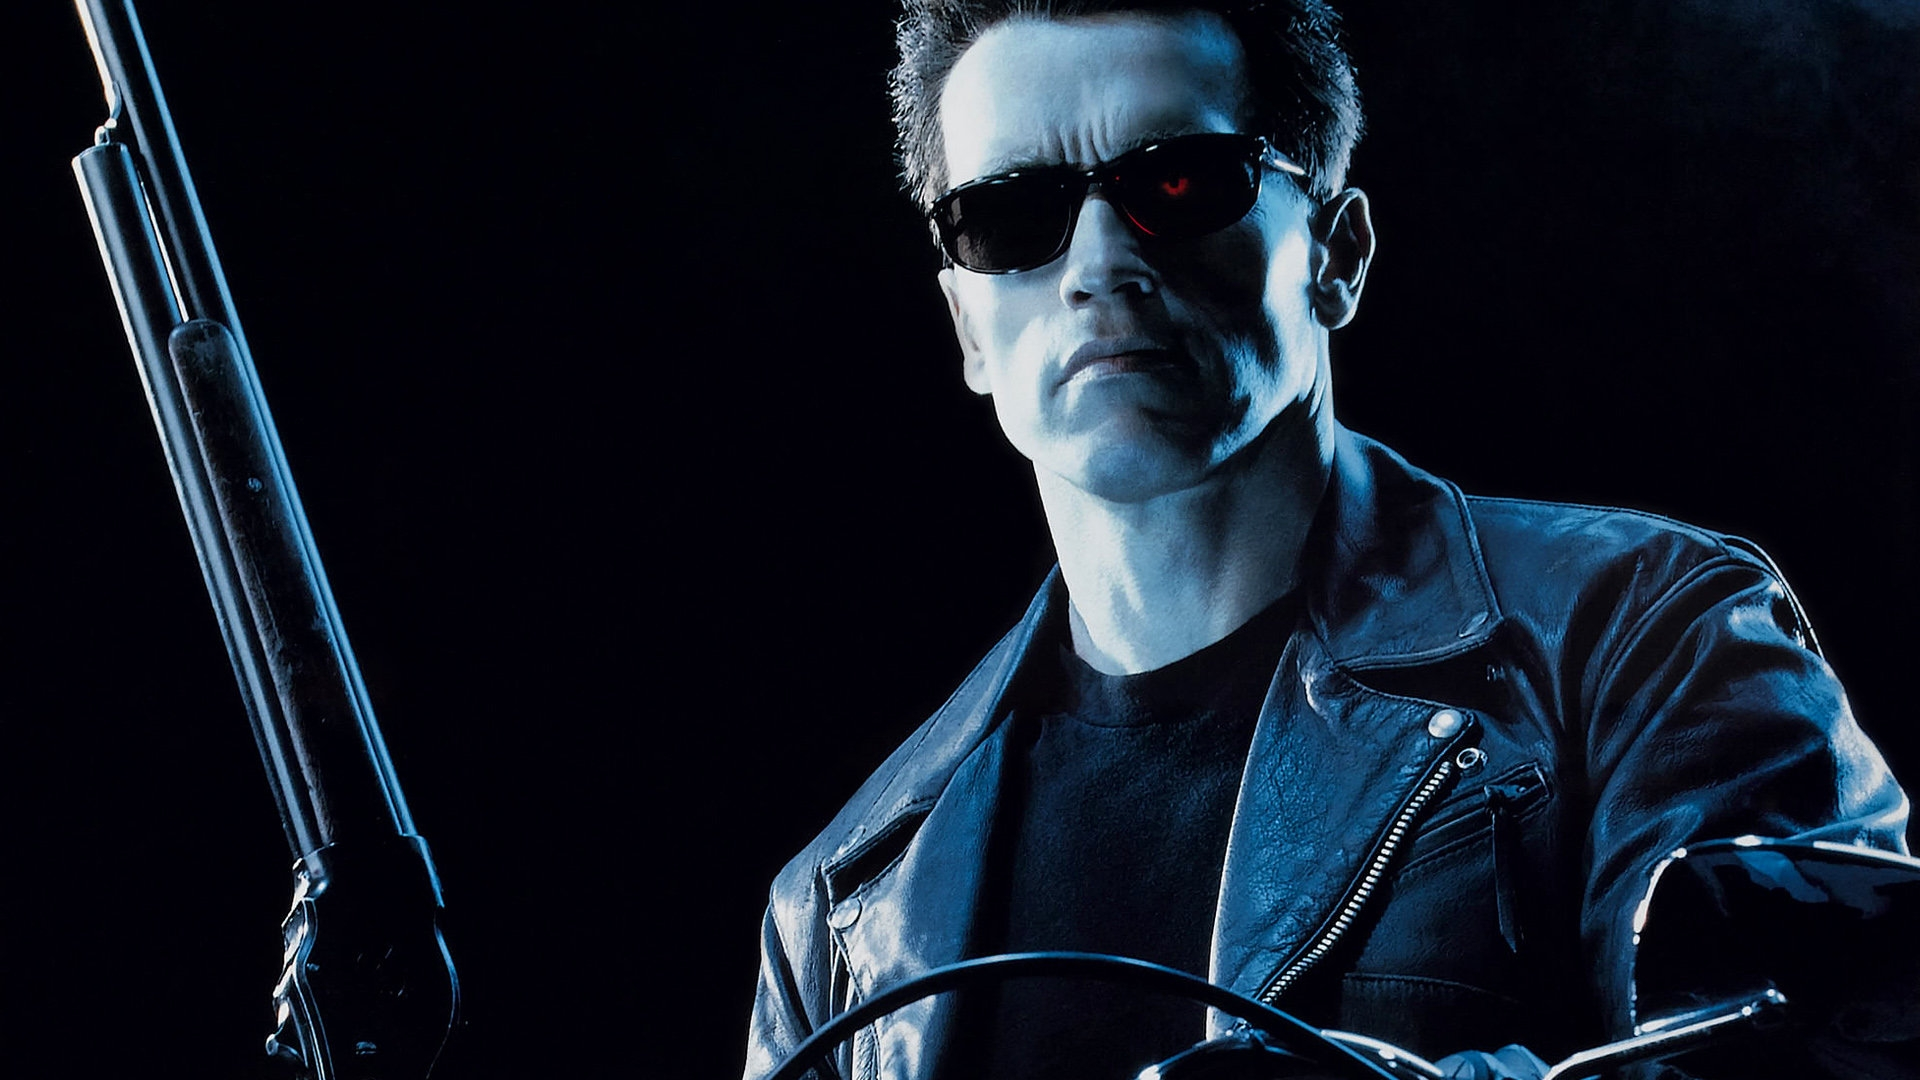 Terminator 2 Judgment Day Wallpapers and Background Images 1920x1080